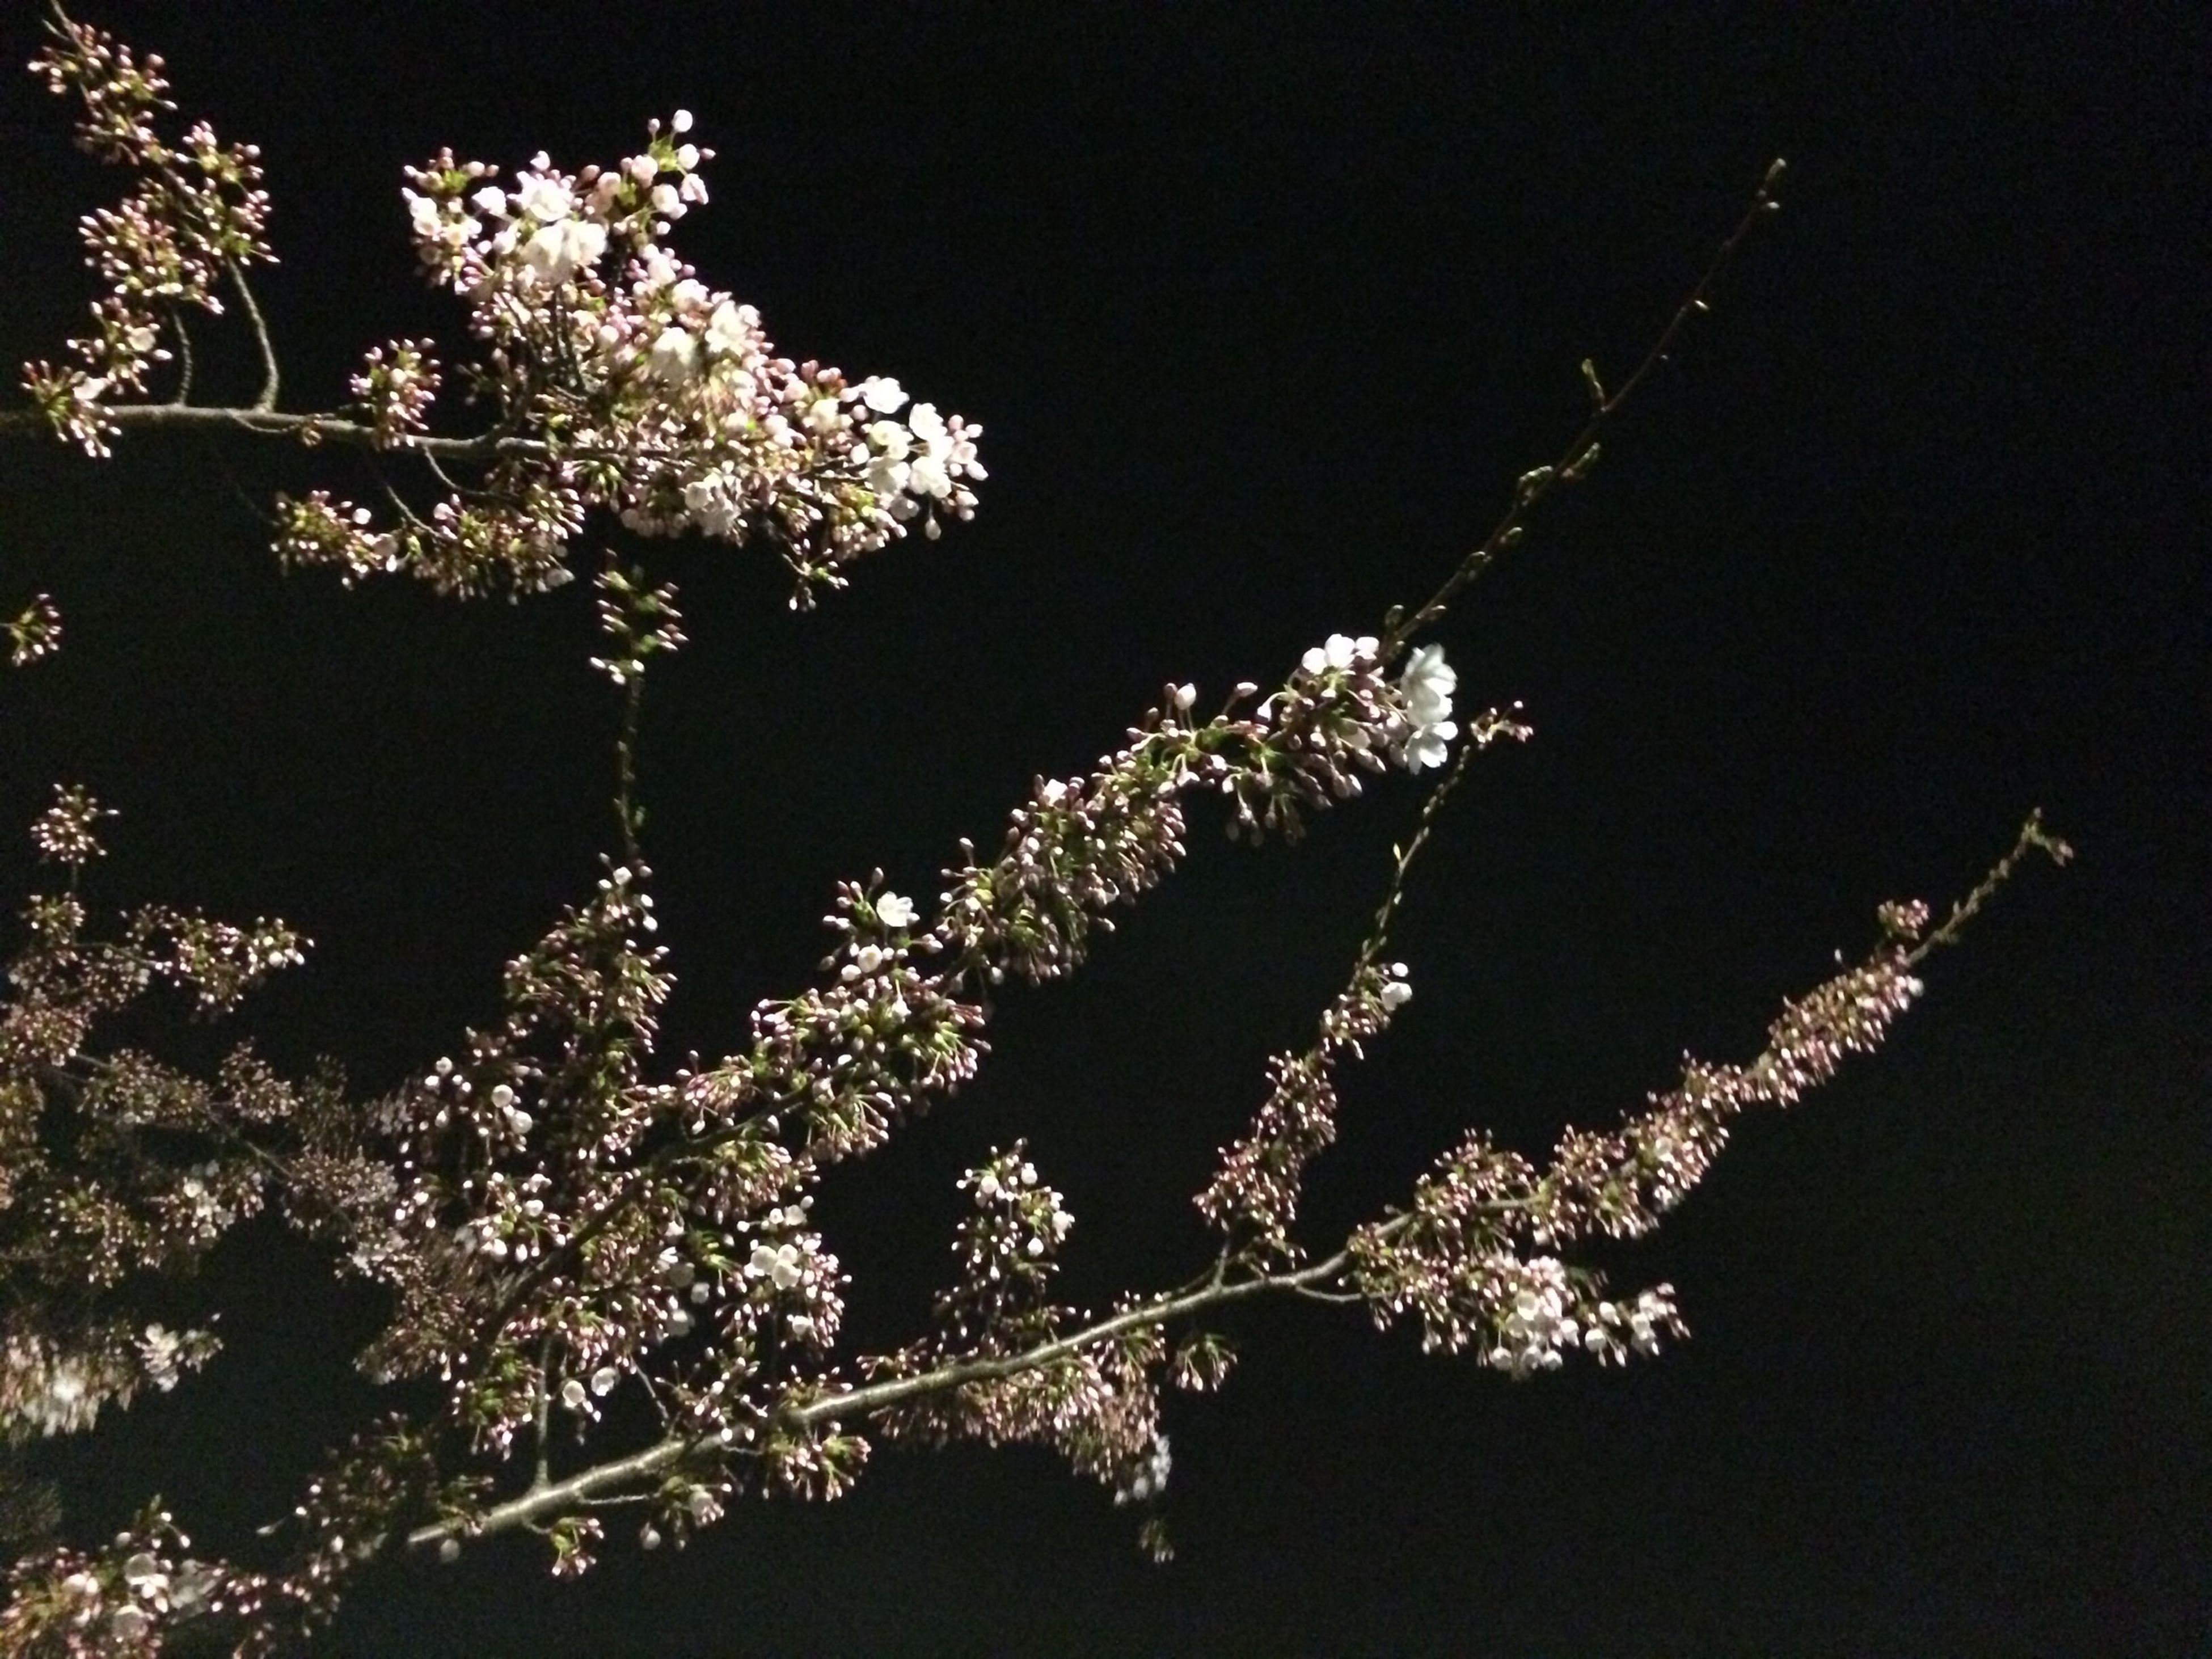 tree, branch, night, low angle view, growth, nature, beauty in nature, illuminated, flower, outdoors, clear sky, tranquility, no people, freshness, sky, plant, twig, fragility, blossom, lighting equipment